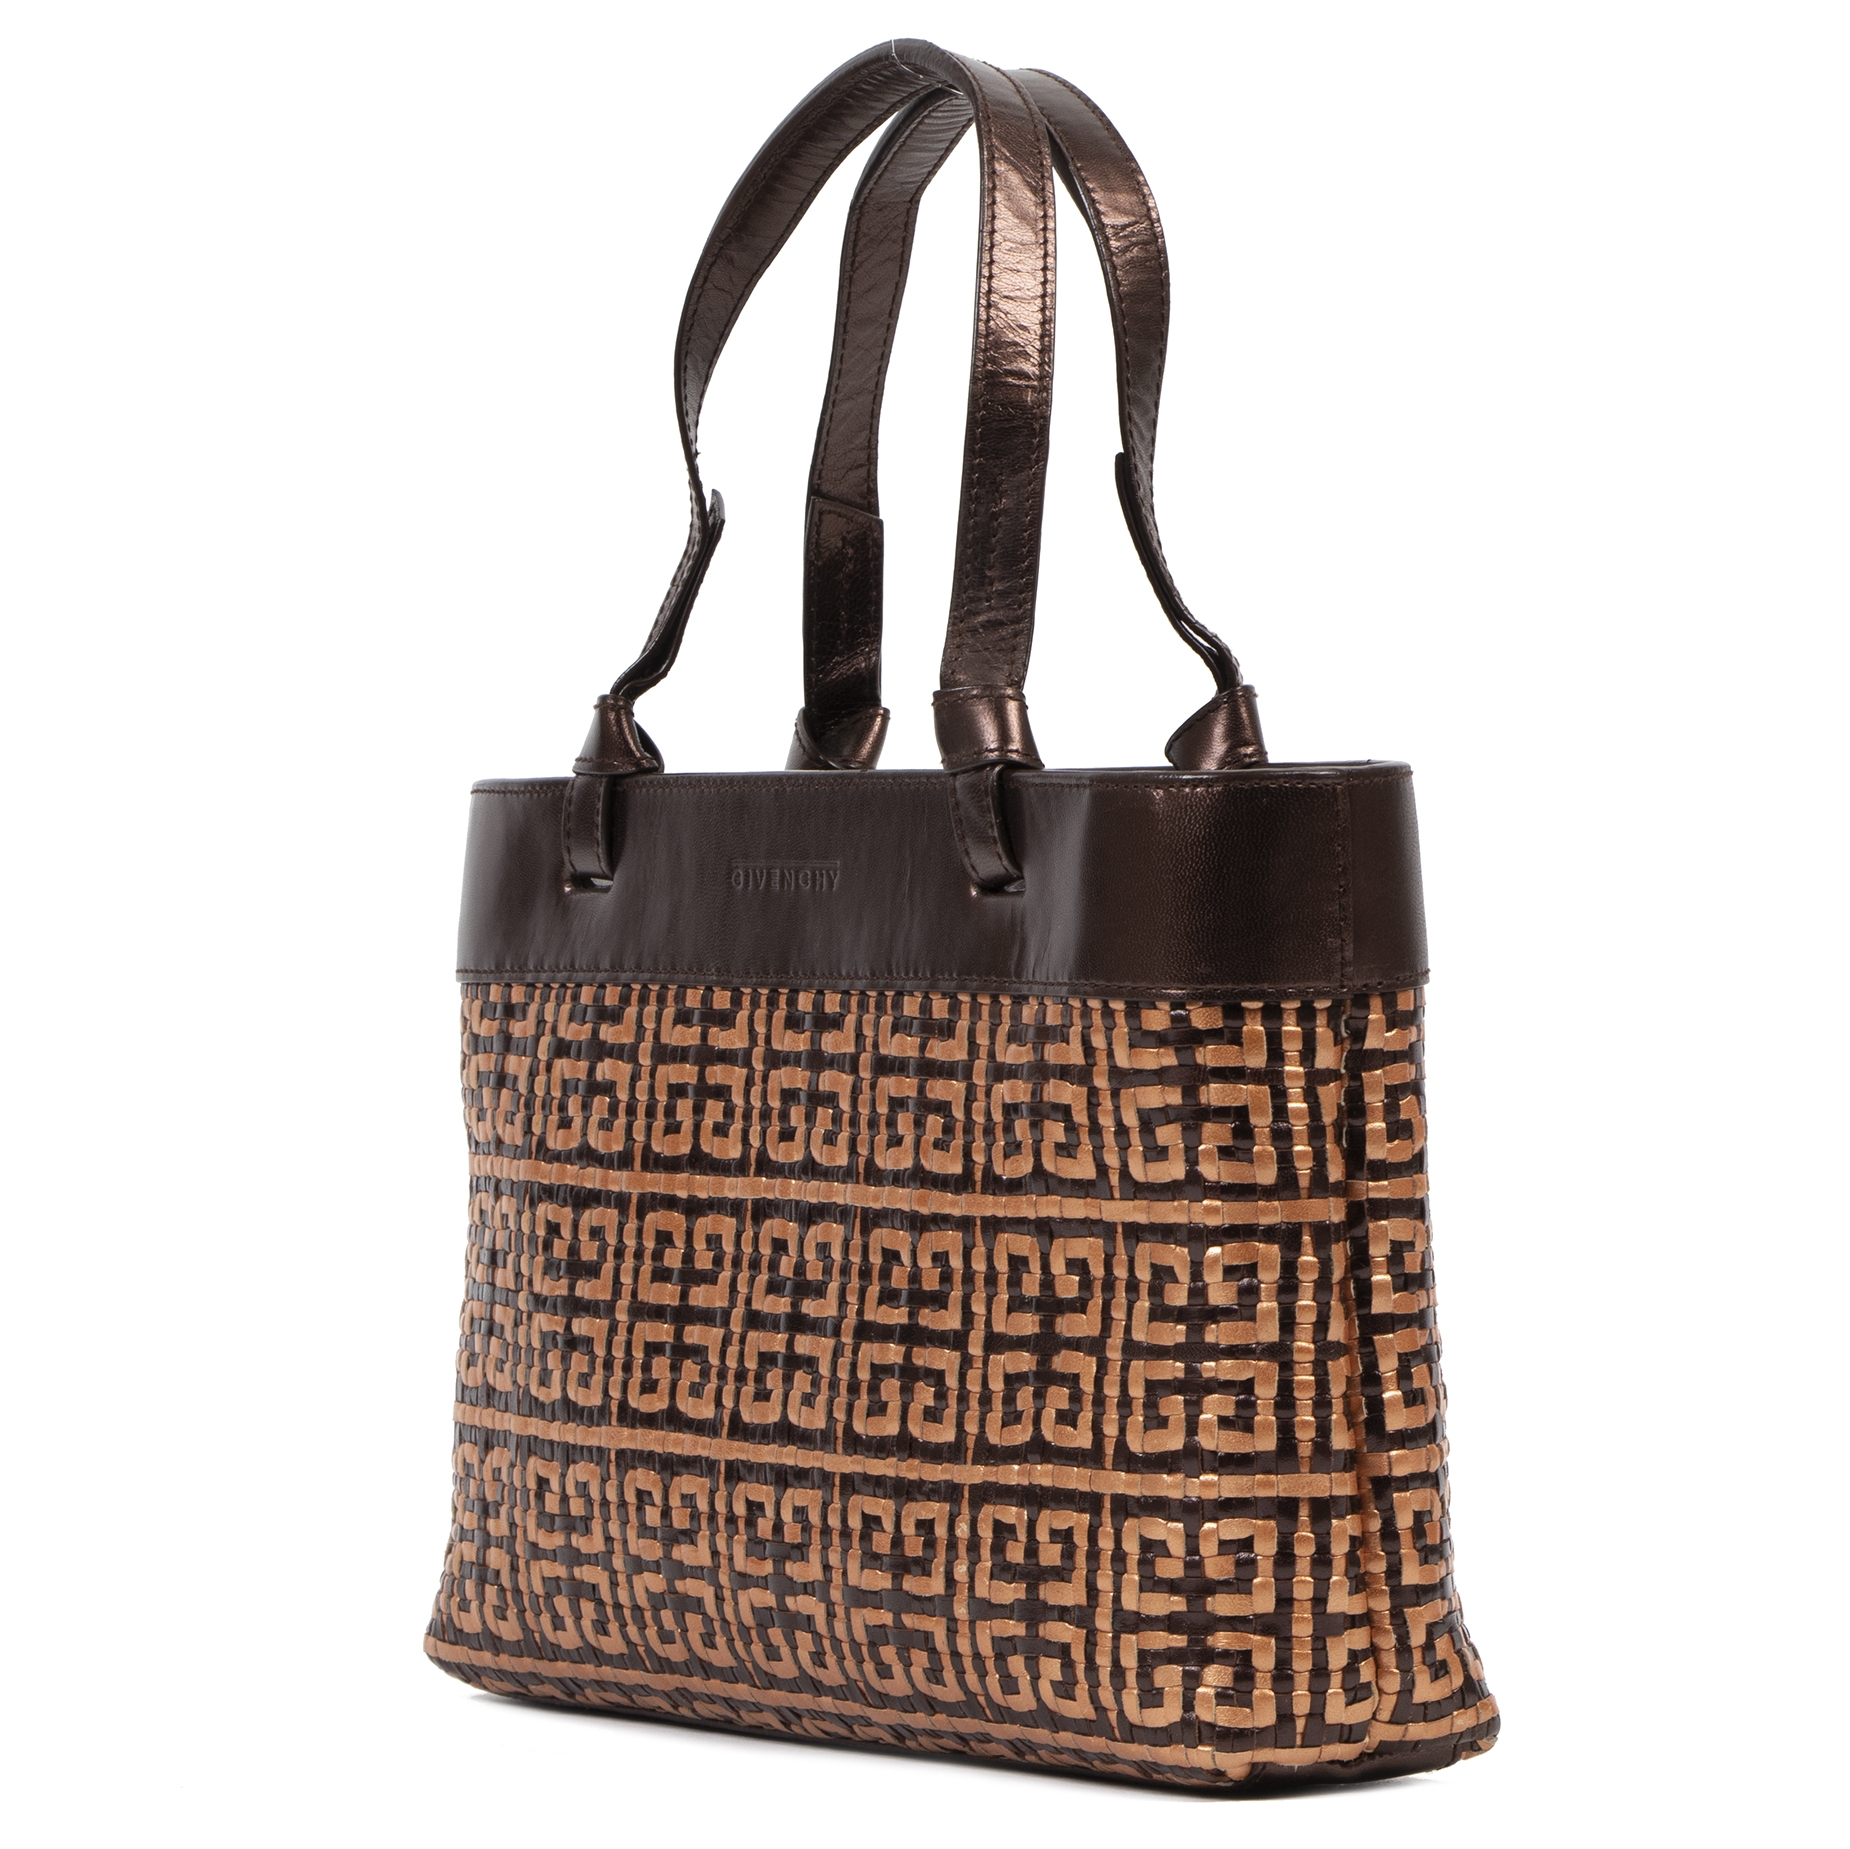 Authentieke tweedehands vintage Givenchy Brown and Gold Woven Top Handle Bag koop online webshop LabelLOV